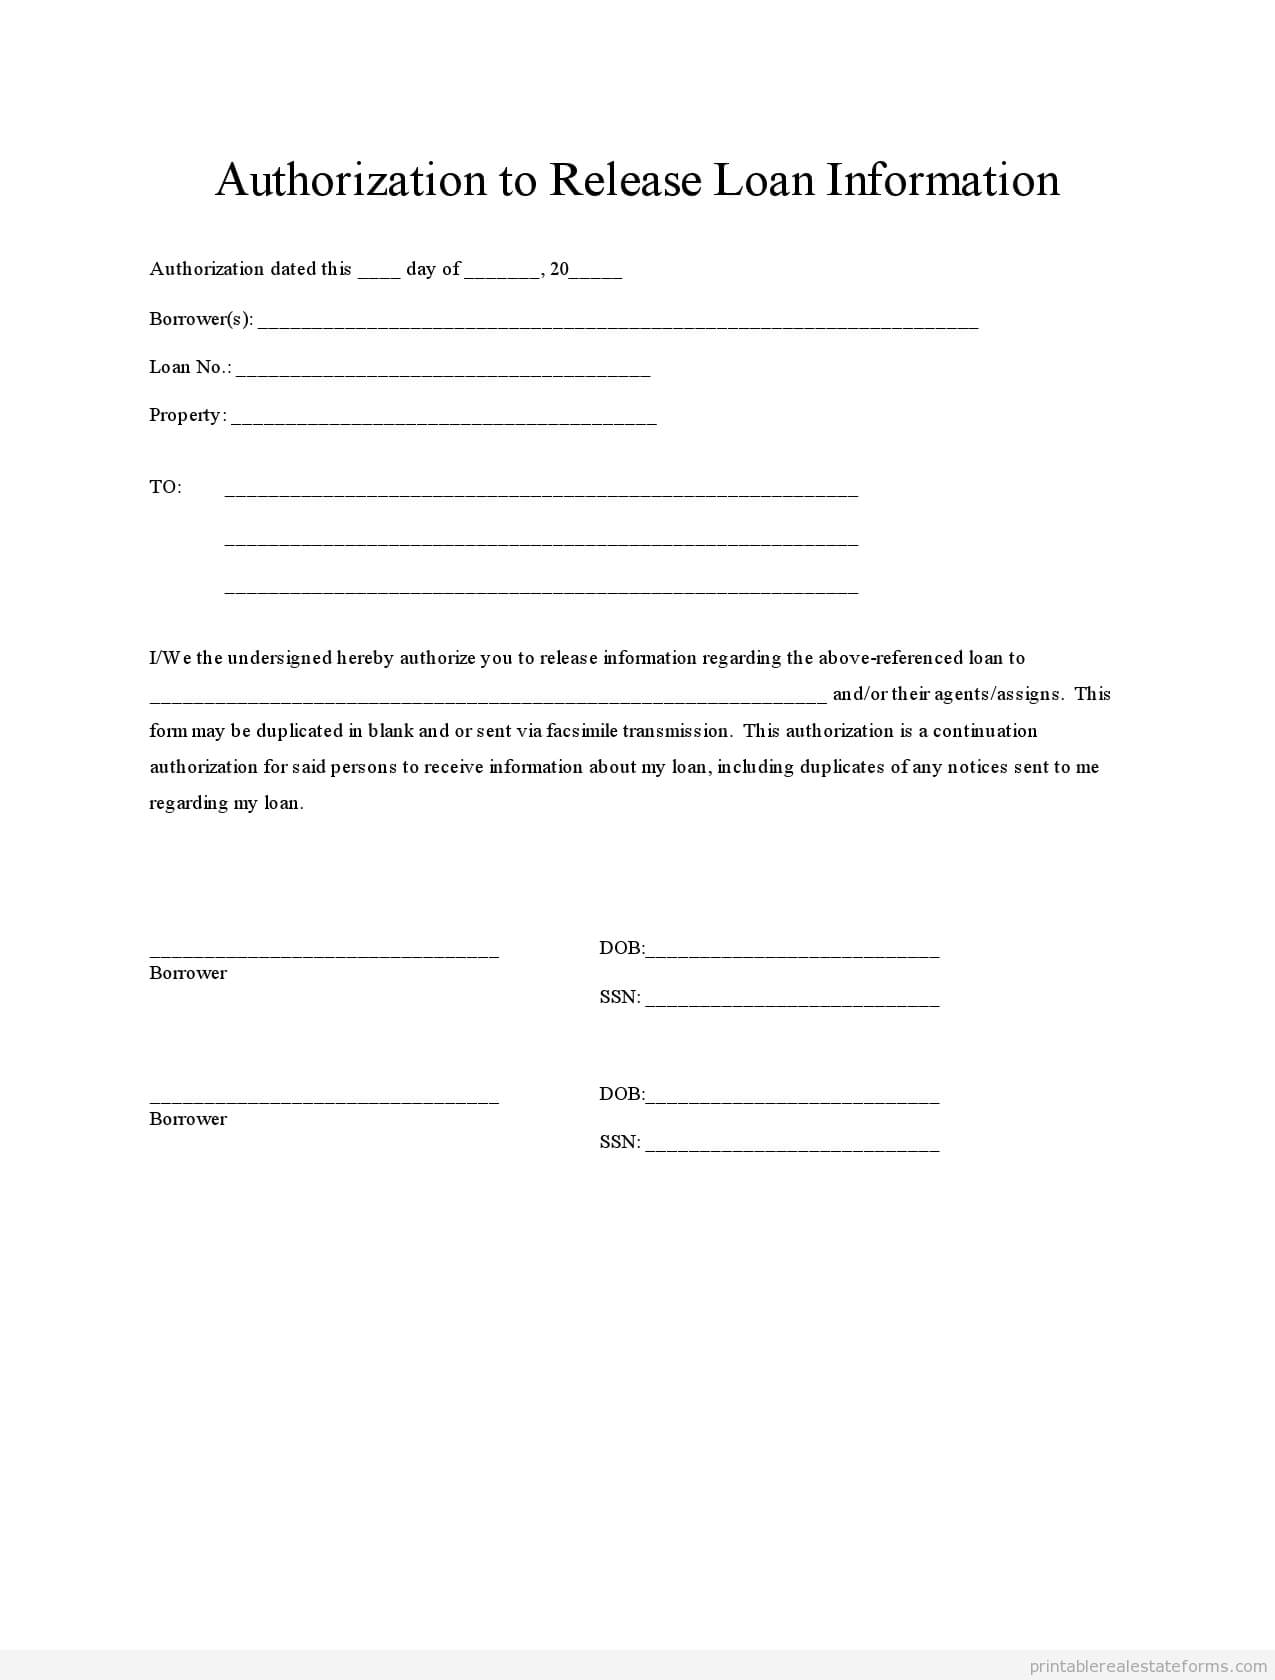 Printable Loan Authorization 2 Template 2015 | Real Estate Within Blank Legal Document Template